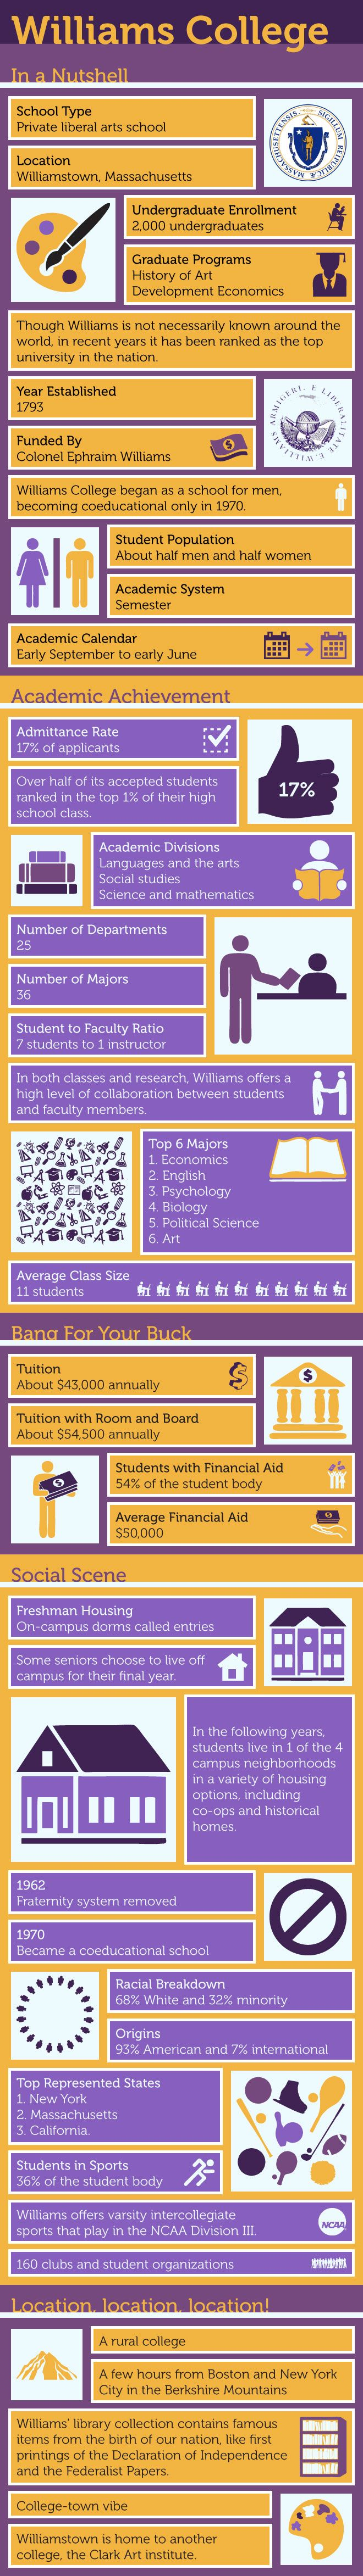 Williams College Infographic